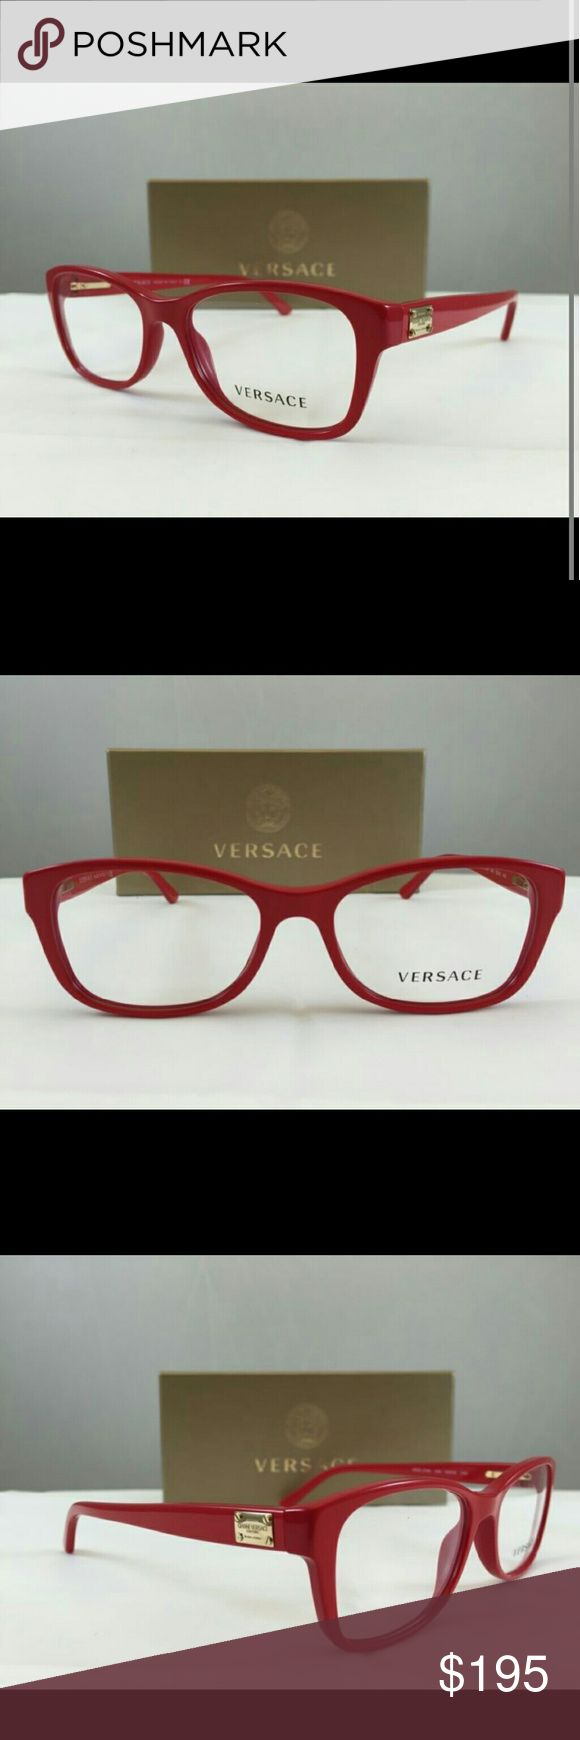 Versace Eyeglasses New and authentic  Versace Eyeglasses  Red frames  Size 54mm Includes original case Versace  Accessories Glasses